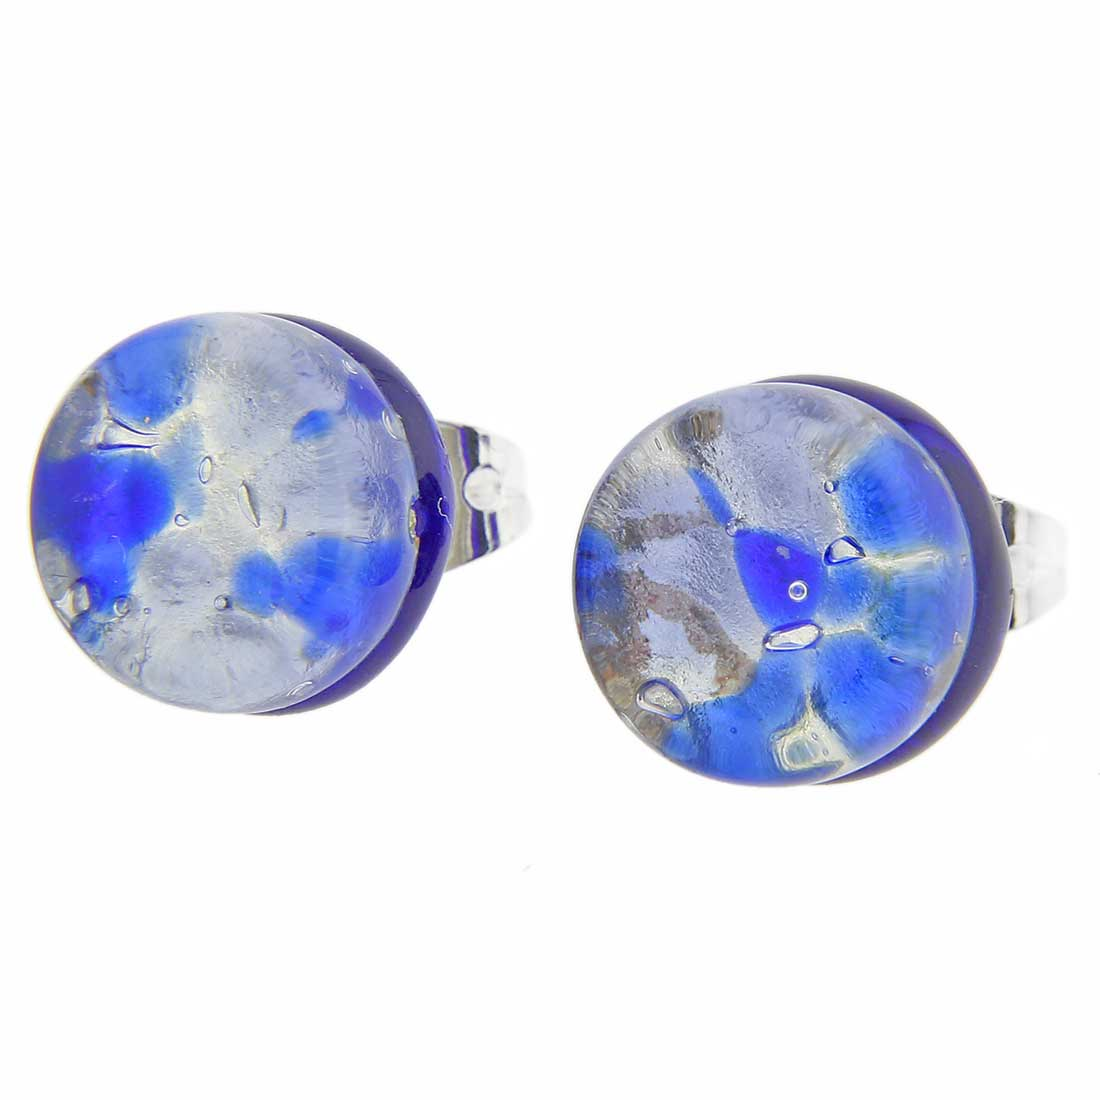 Venetian Reflections Round Stud Earrings - Periwinkle